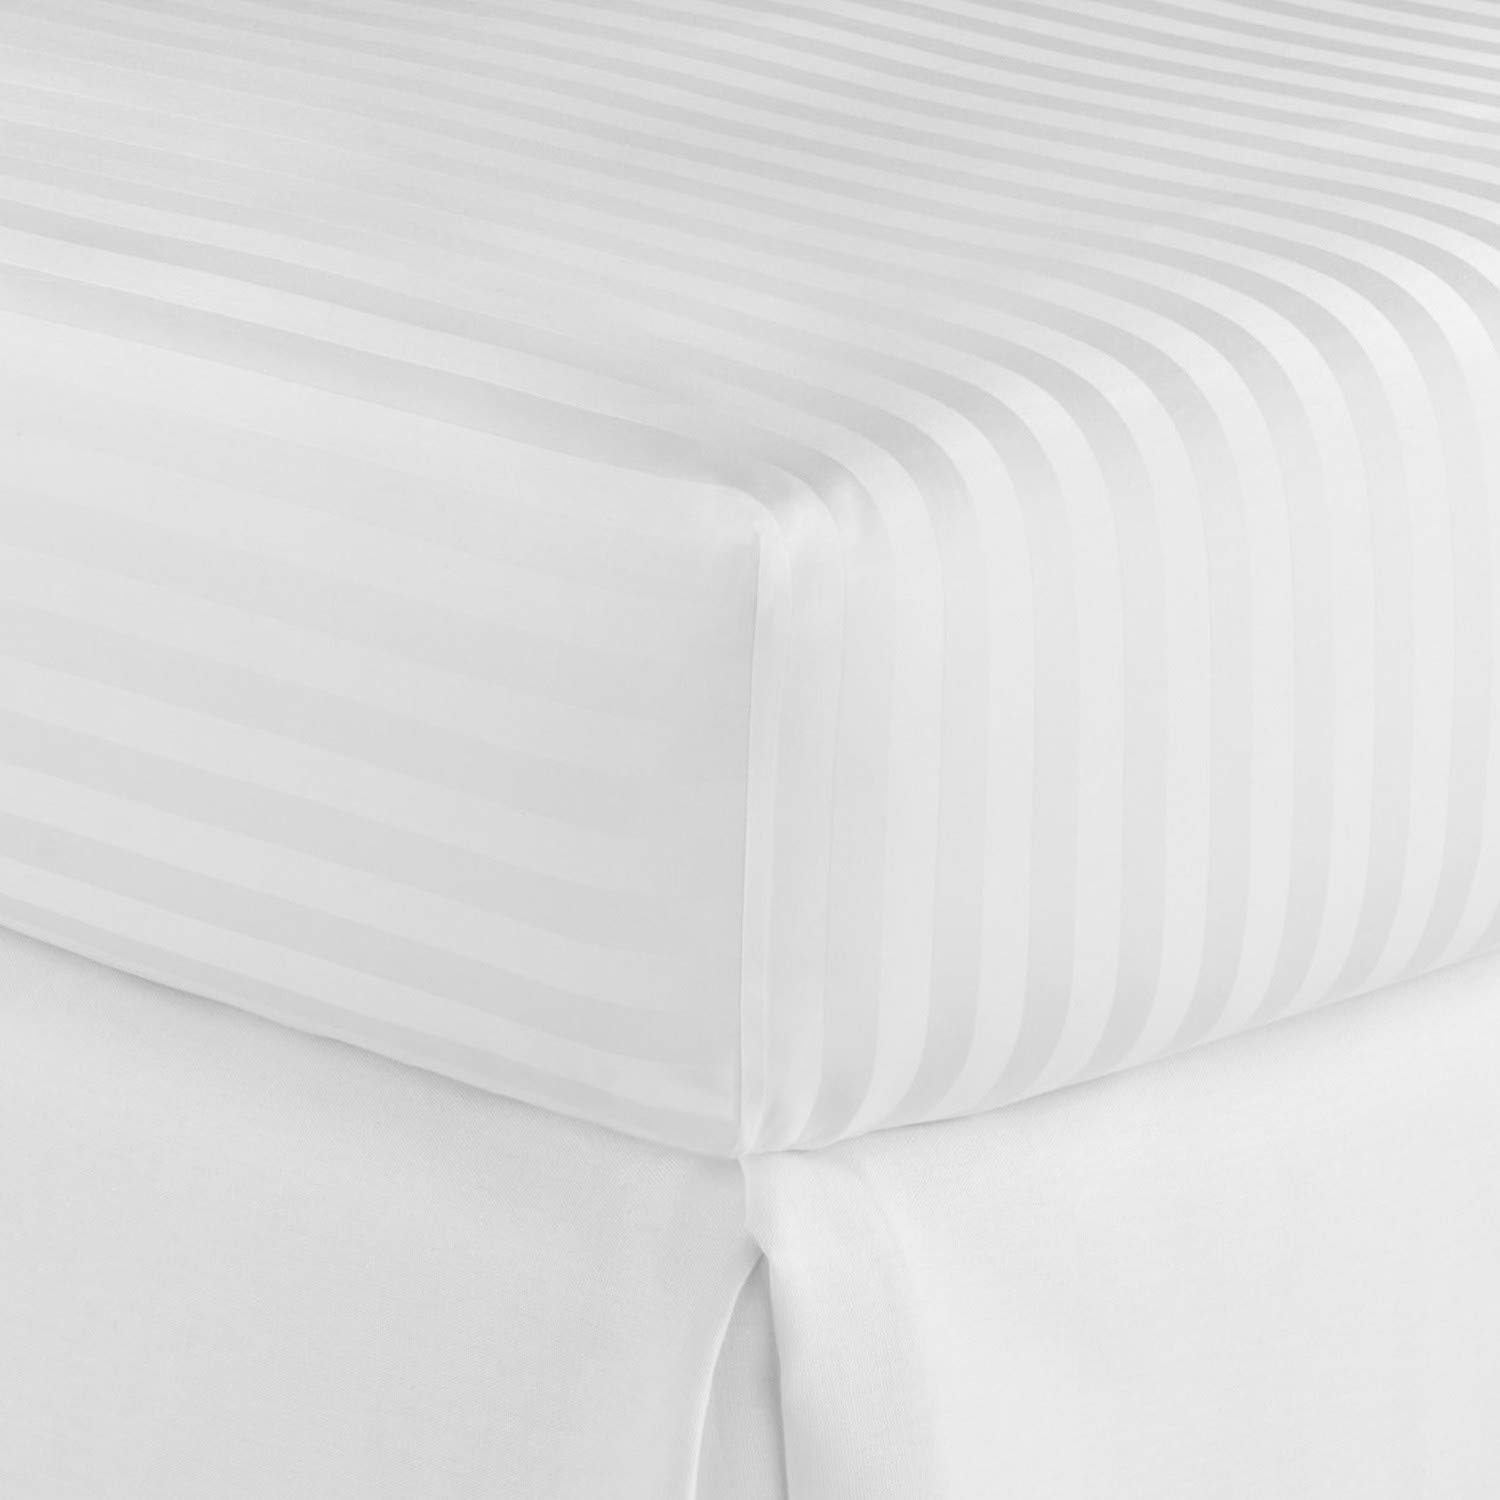 400 Thread Count 100 Percent Cotton Fitted Sheet Queen 15 Inch Deep Pocket Long Staple Cotton 1 Fitted Sheet Only White Stripe Sateen Weave Soft Breathable Elastic All Arount The Matress by Lukeville Luxury Linen